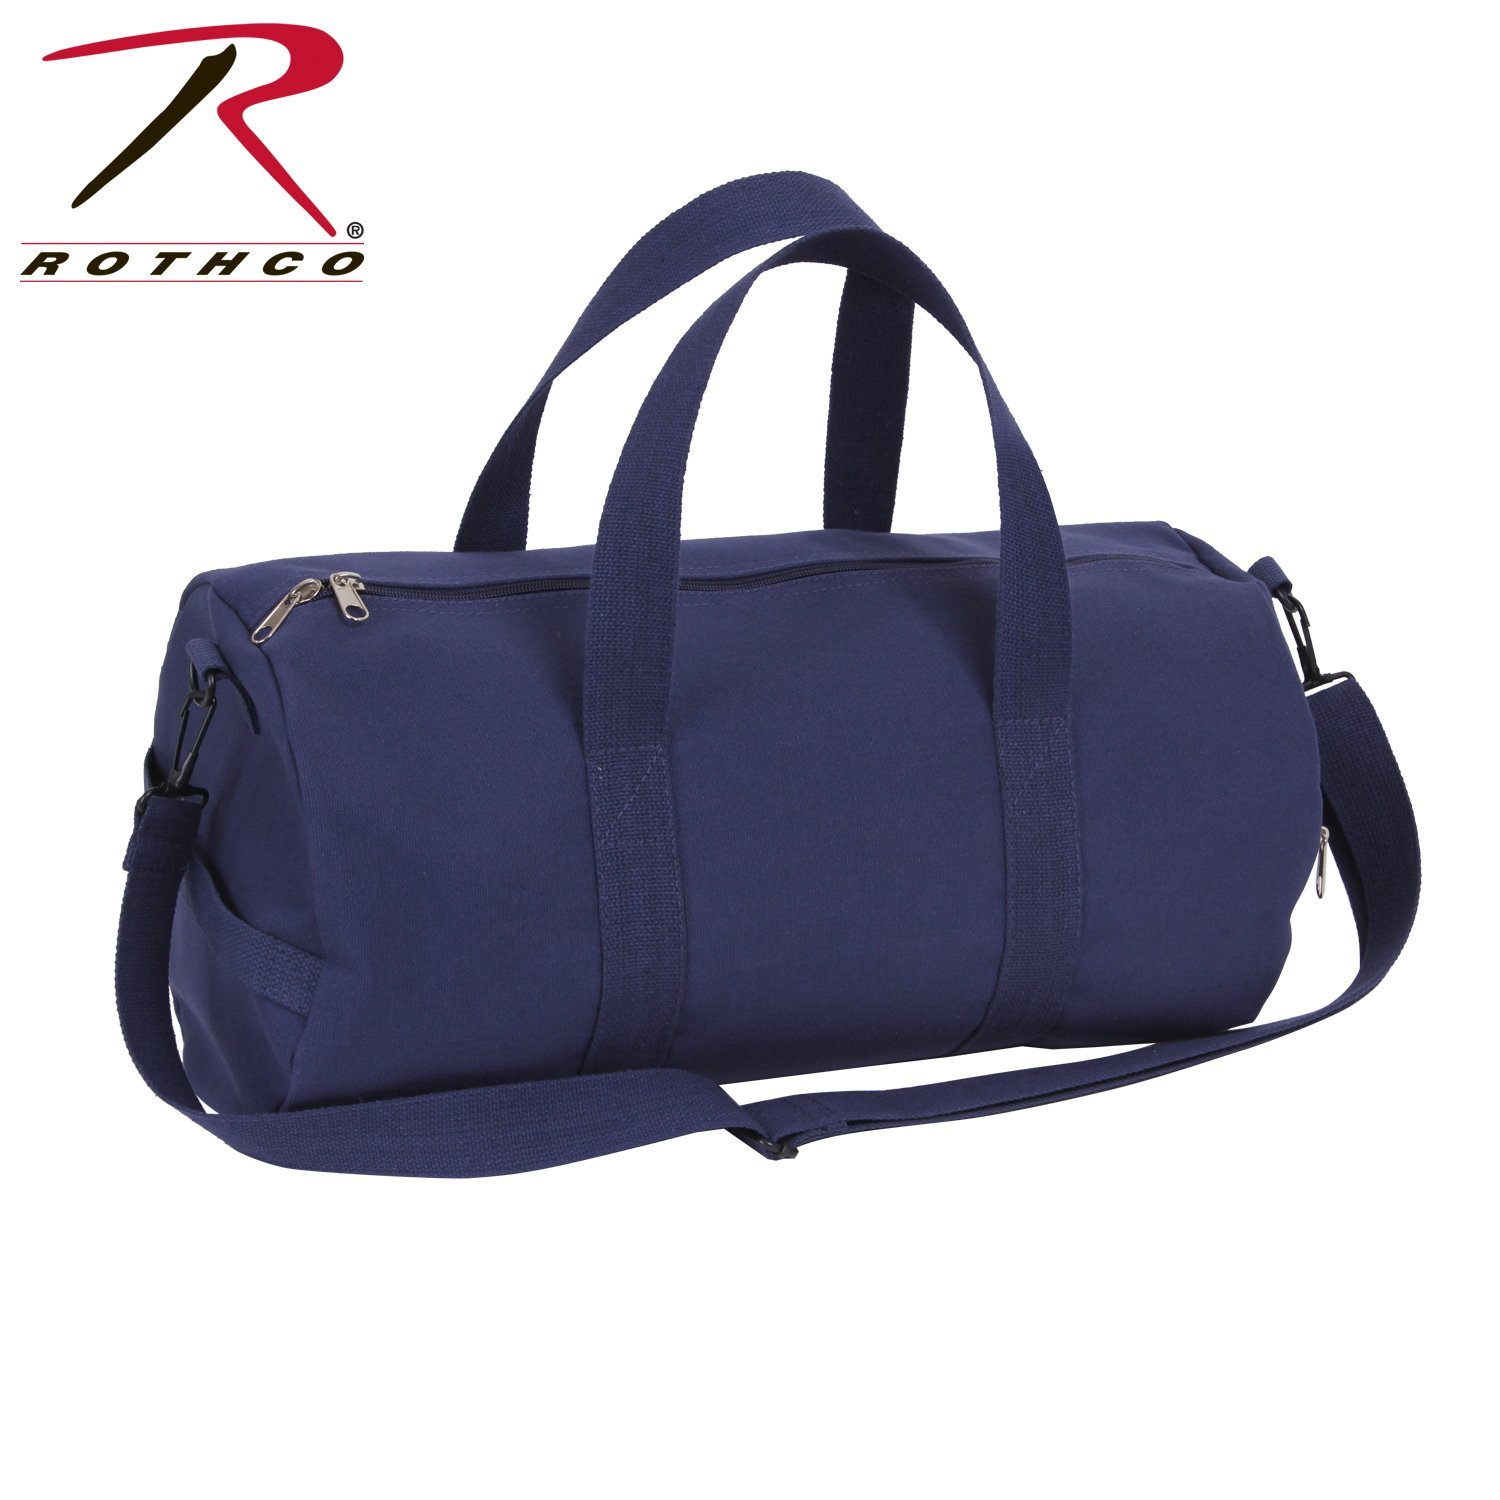 Rothco Canvas Shoulder Duffle Bag - 24 Inch, Navy Blue